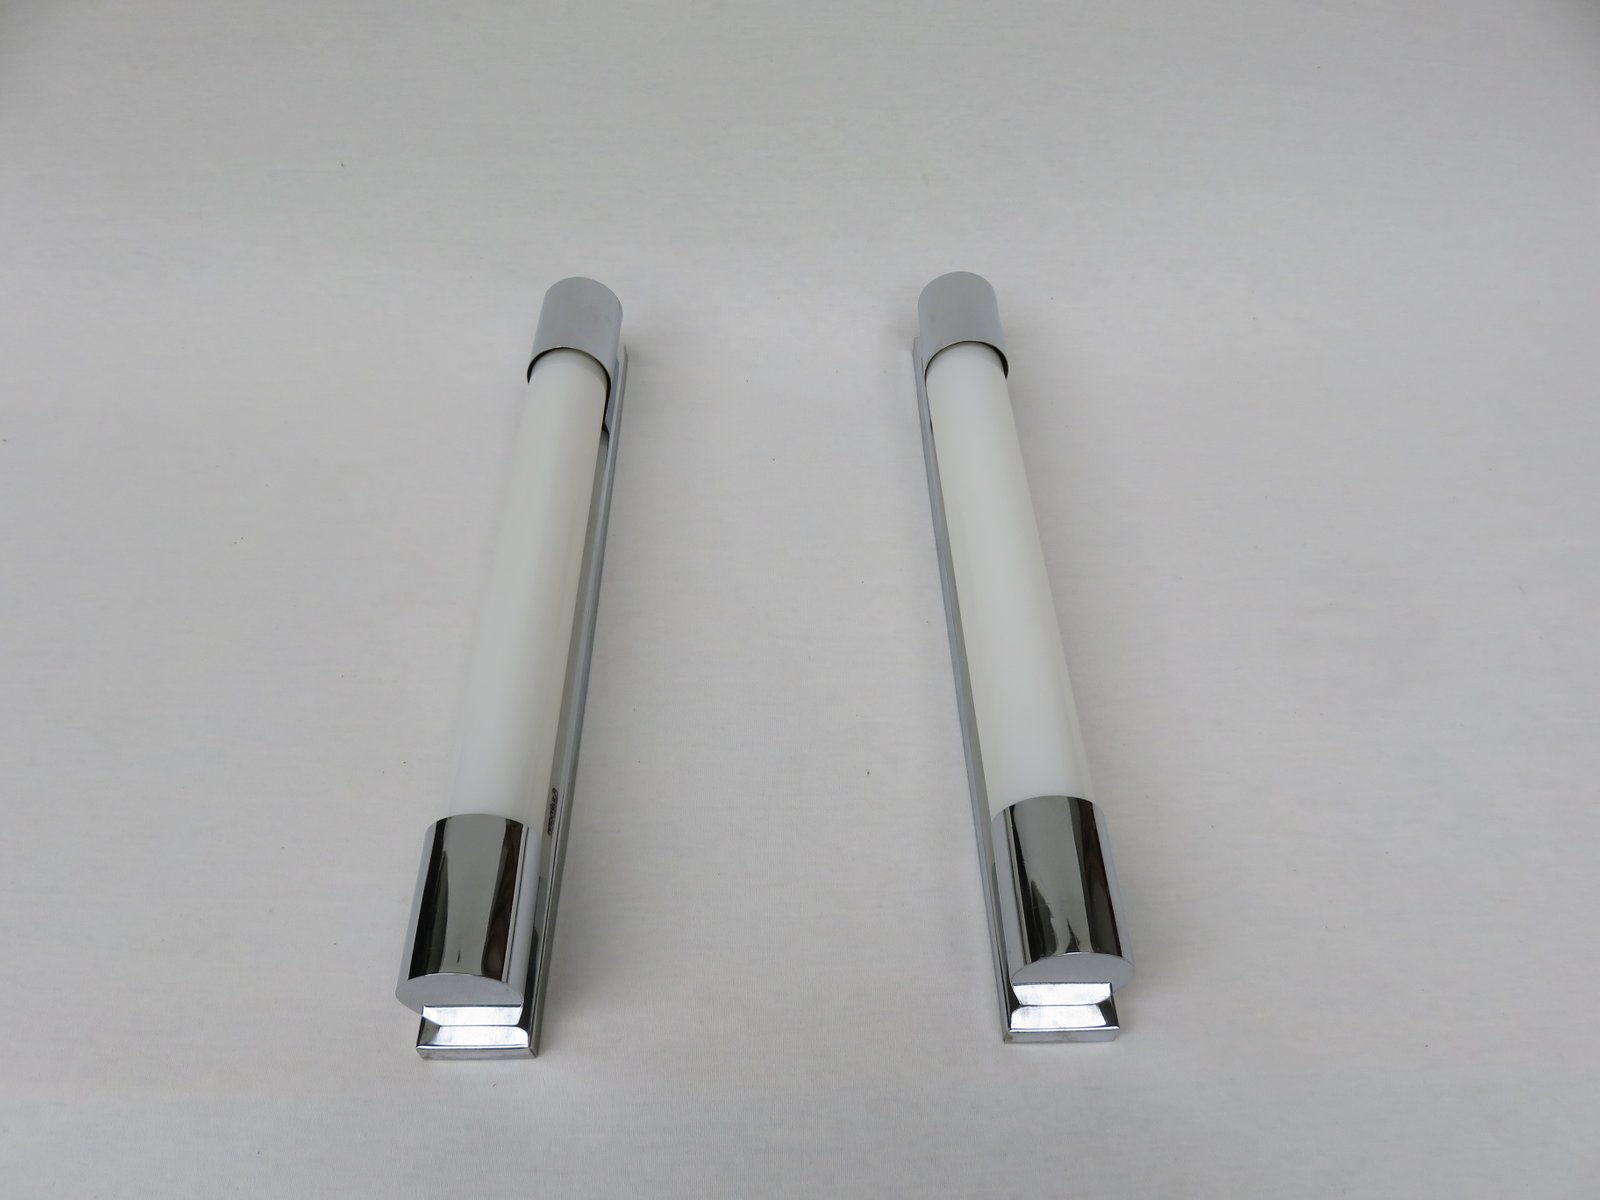 Art Deco Chrome Plated Wall Sconces Set of 2 for sale at Pamono